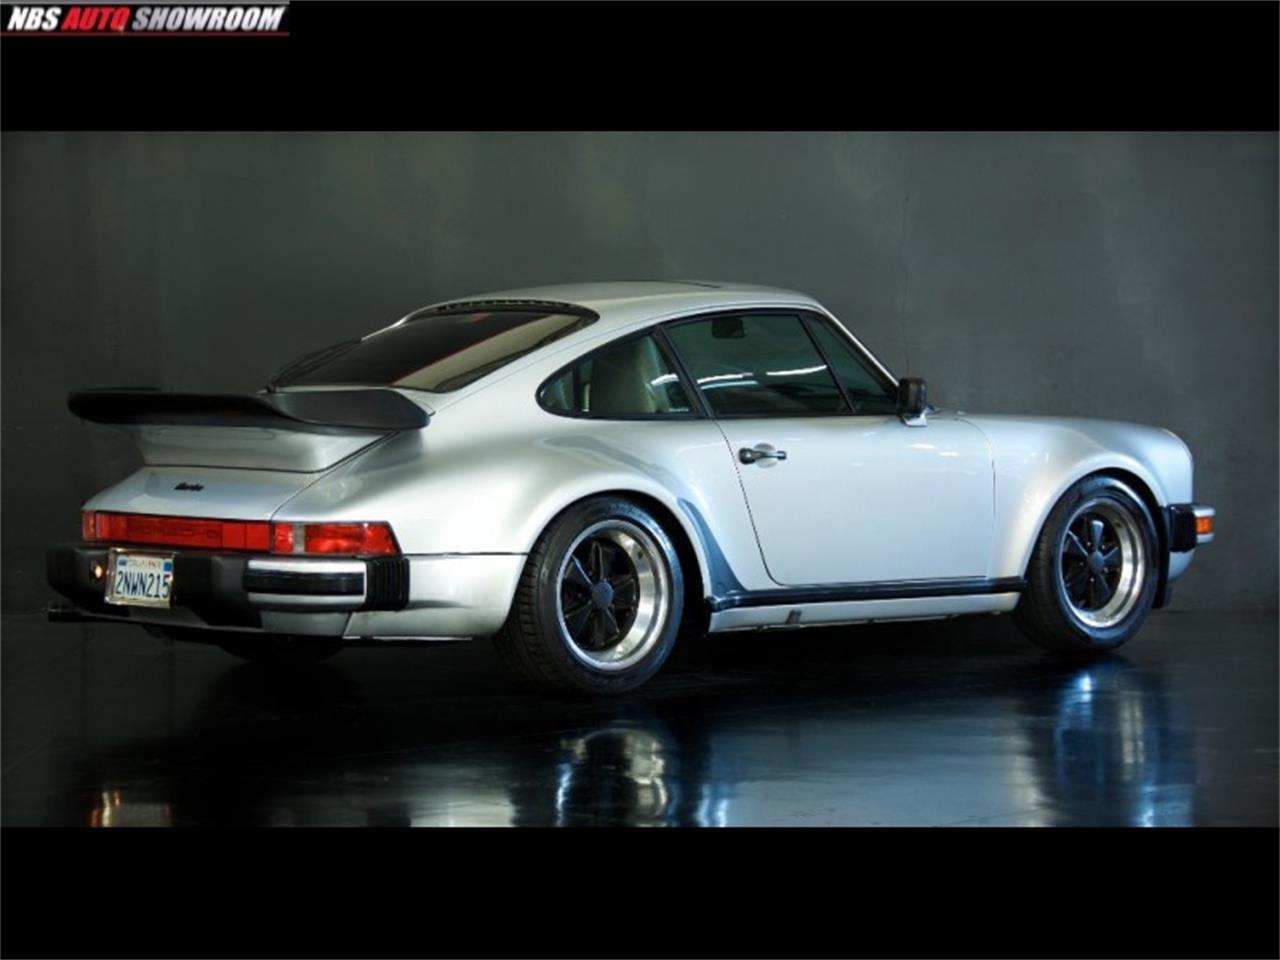 Large Picture of 1989 911 - $160,000.00 Offered by NBS Auto Showroom - Q9VO